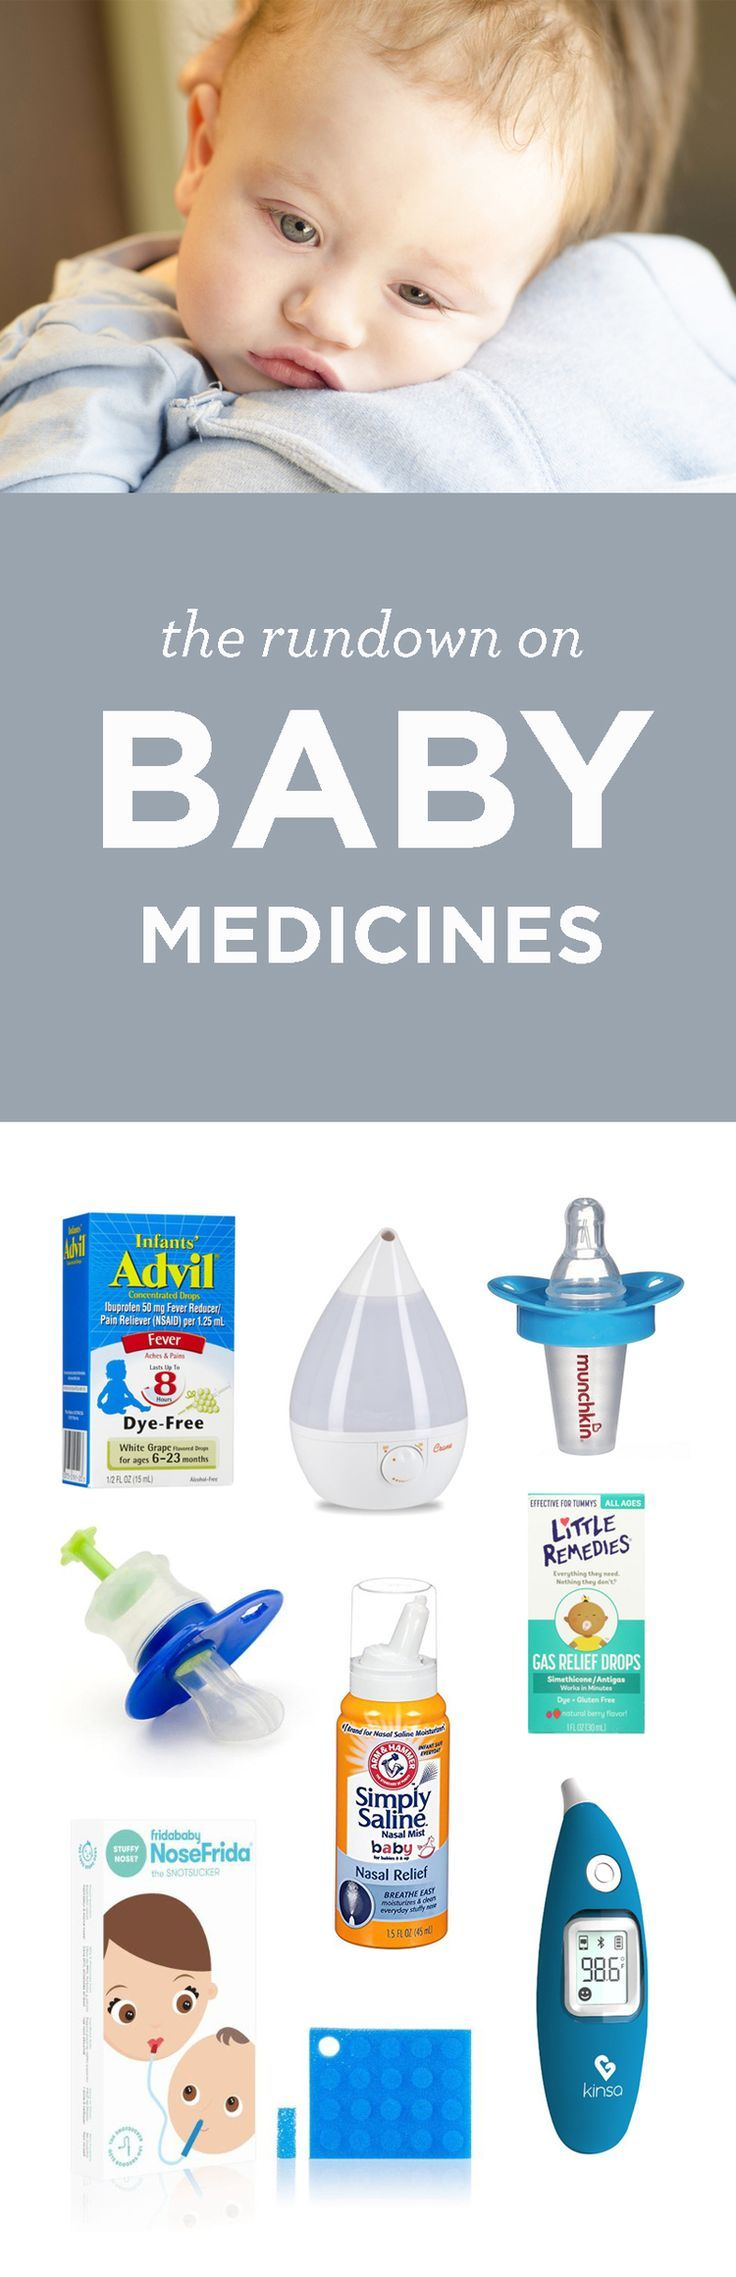 Having a sick baby is the worst. Check out this great list of all the infant medications out there and what symptoms they treat so your baby medicine cabinet is prepared!